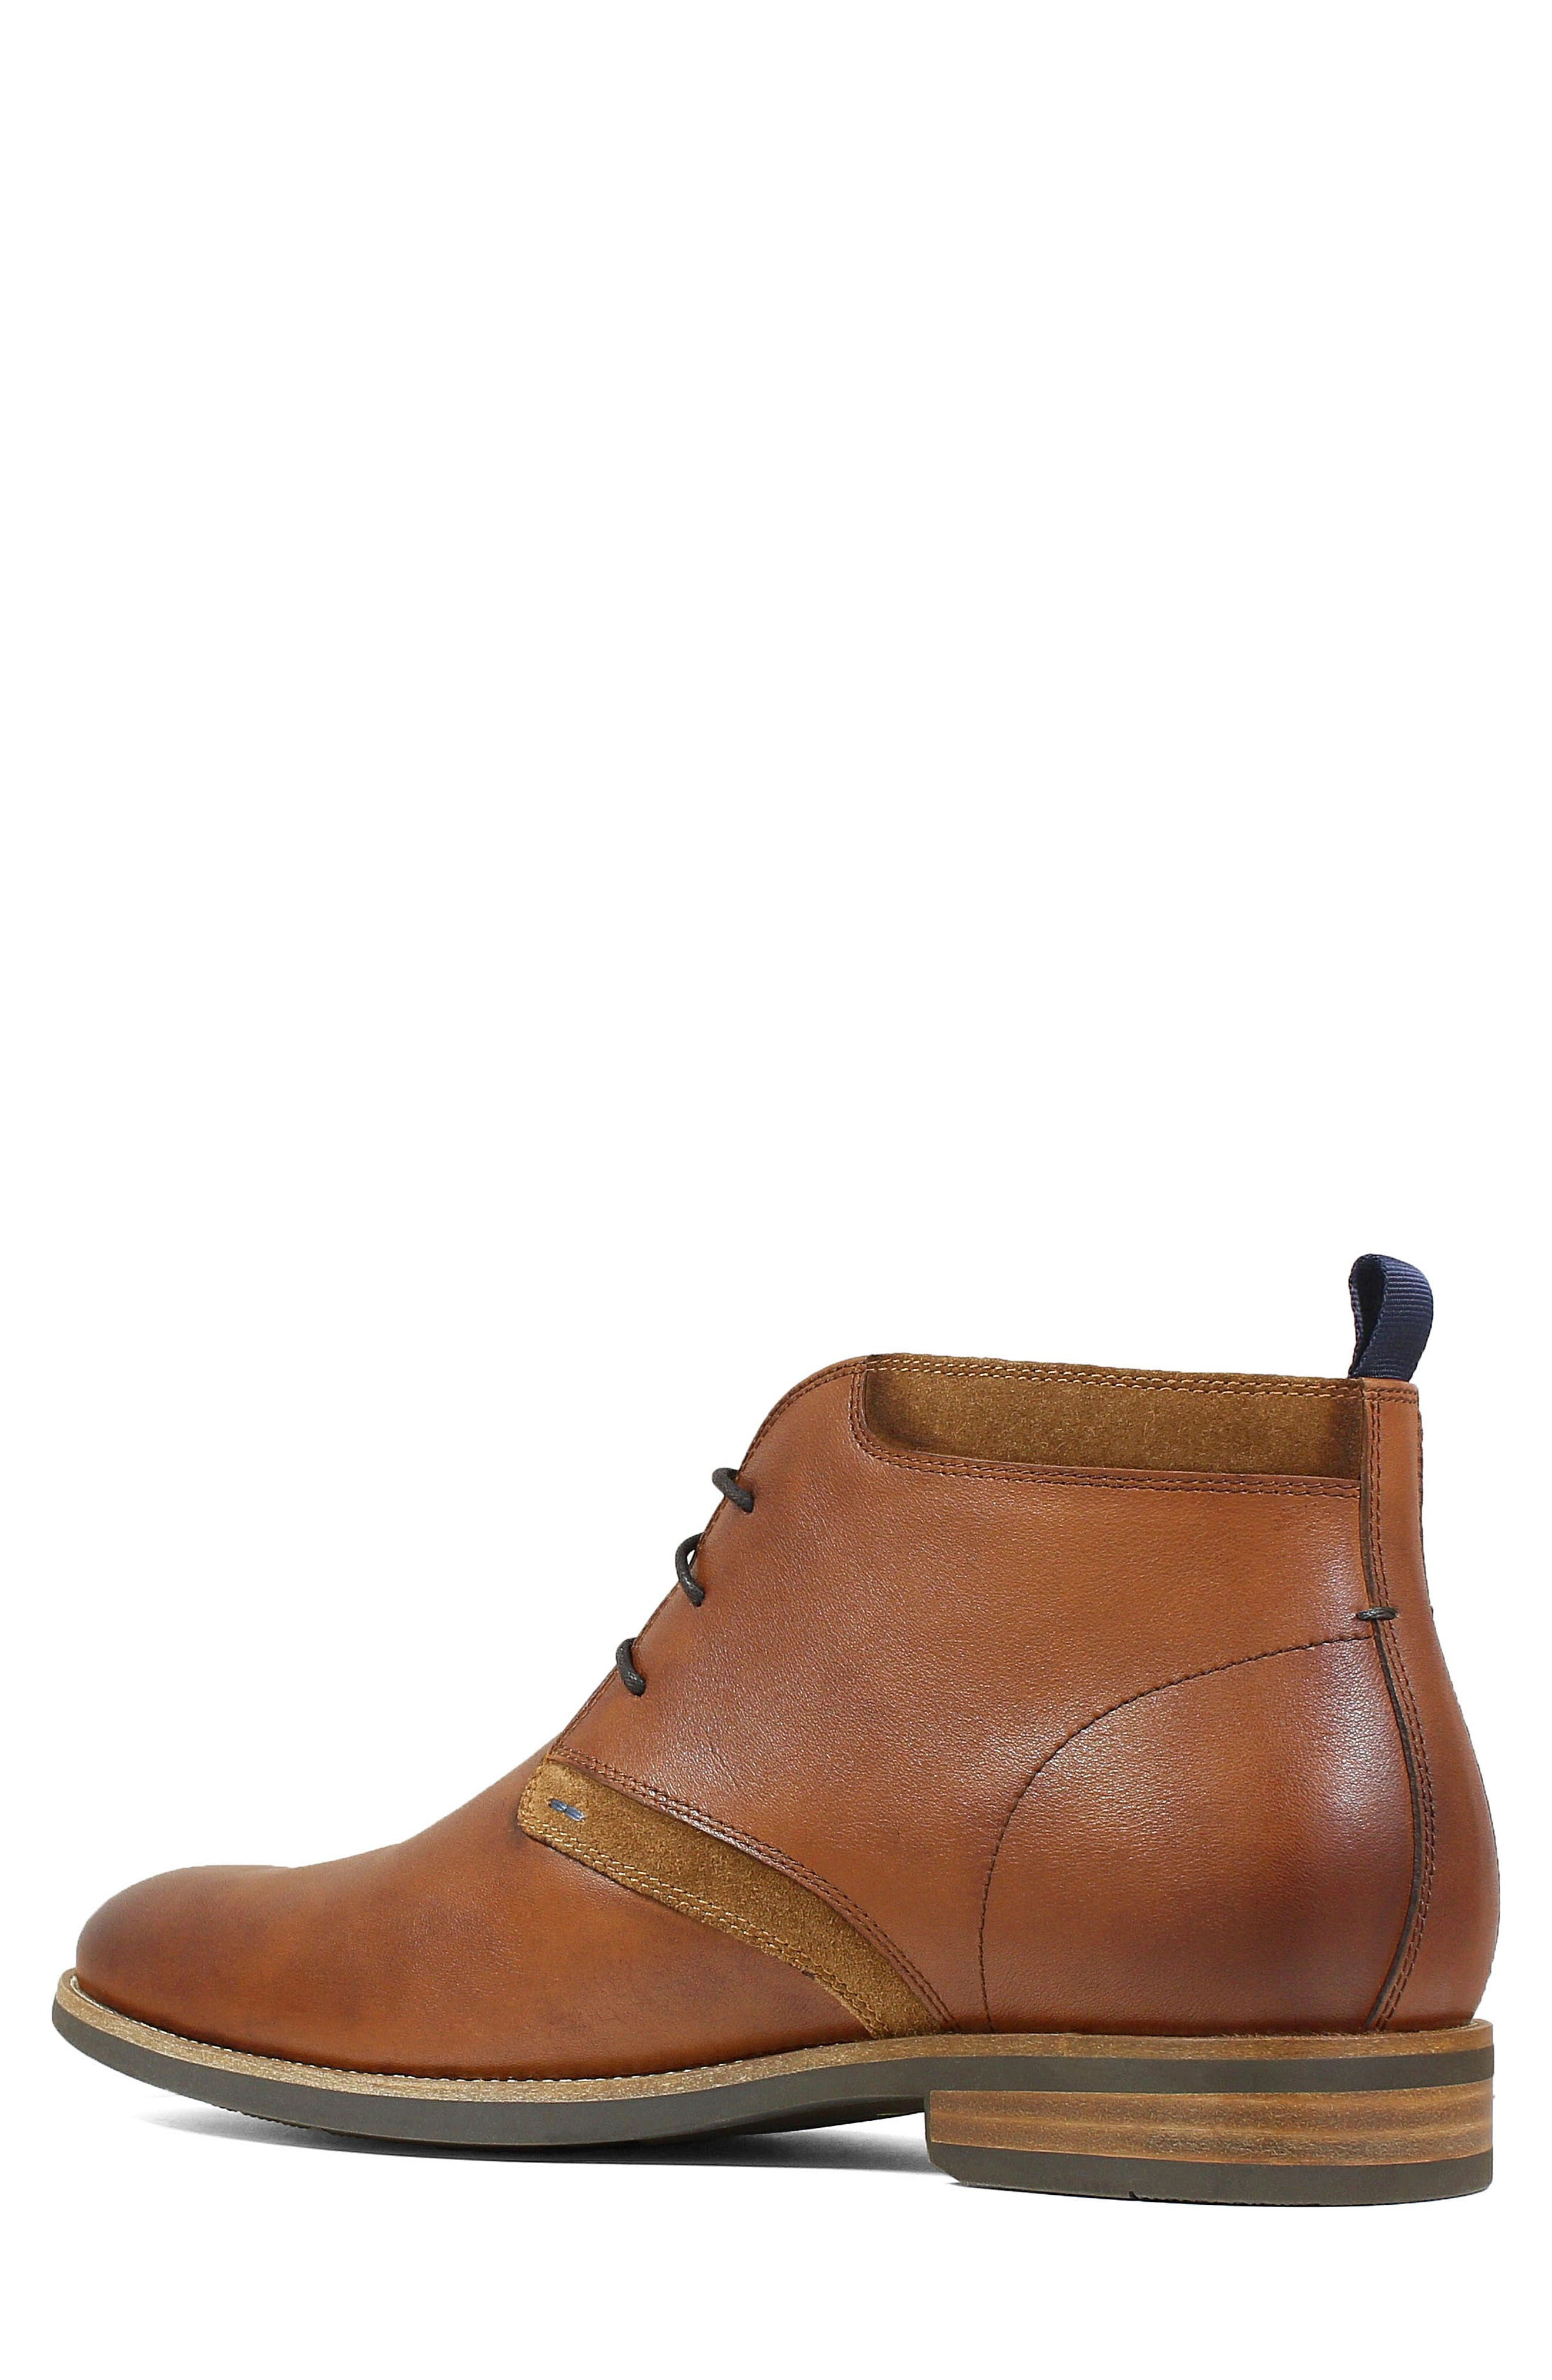 FLORSHEIM, Uptown Chukka Boot, Alternate thumbnail 2, color, COGNAC LEATHER